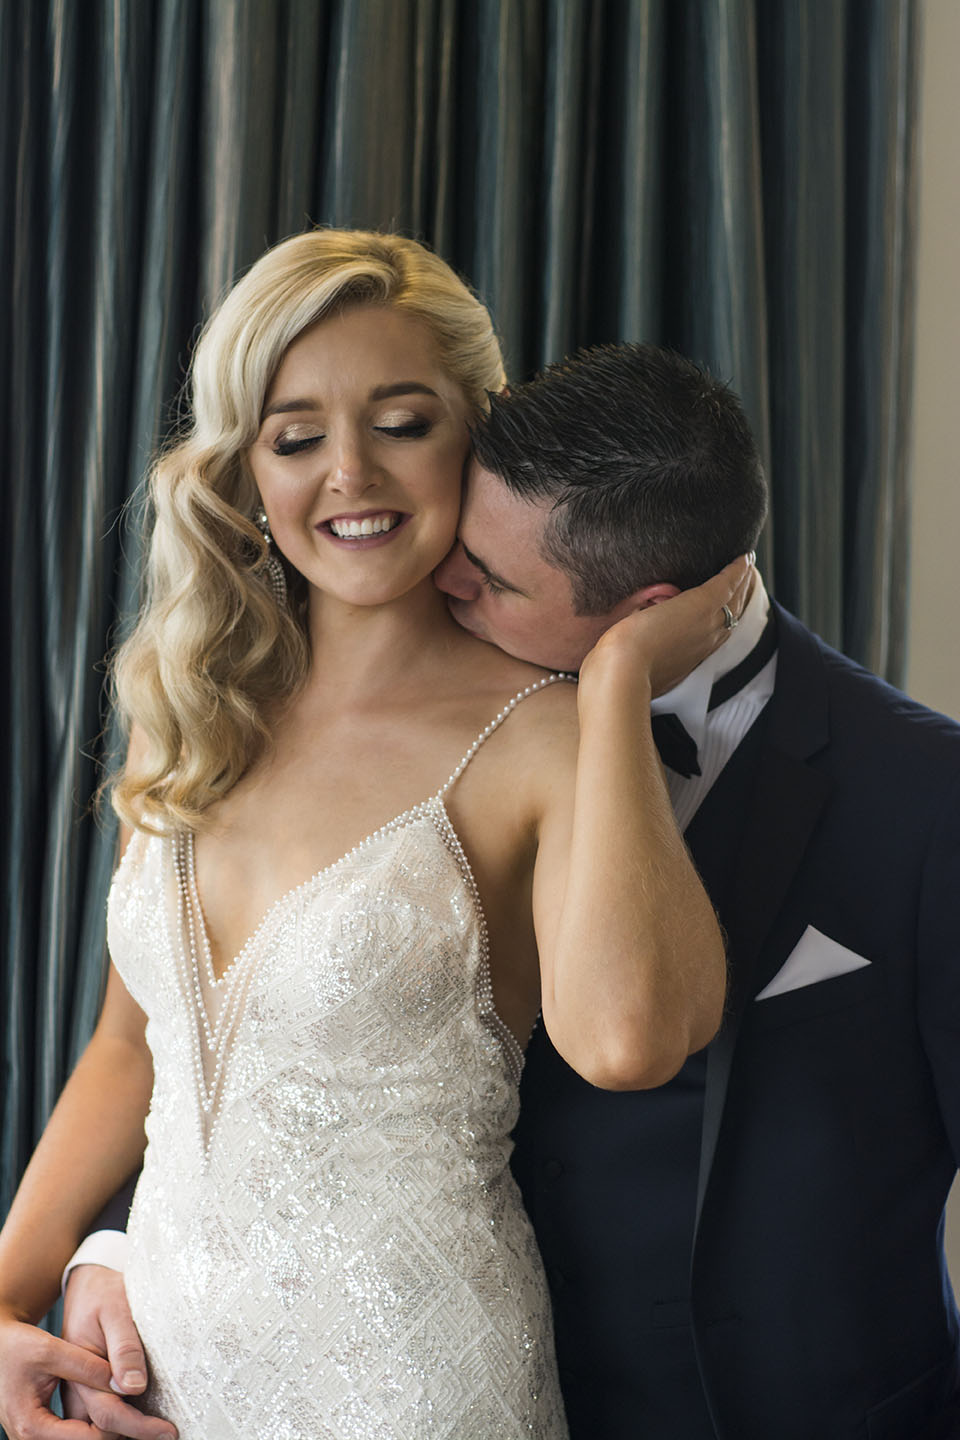 irish wedding photographer Radisson Hotel Sligo AD2018 57 - Gallery